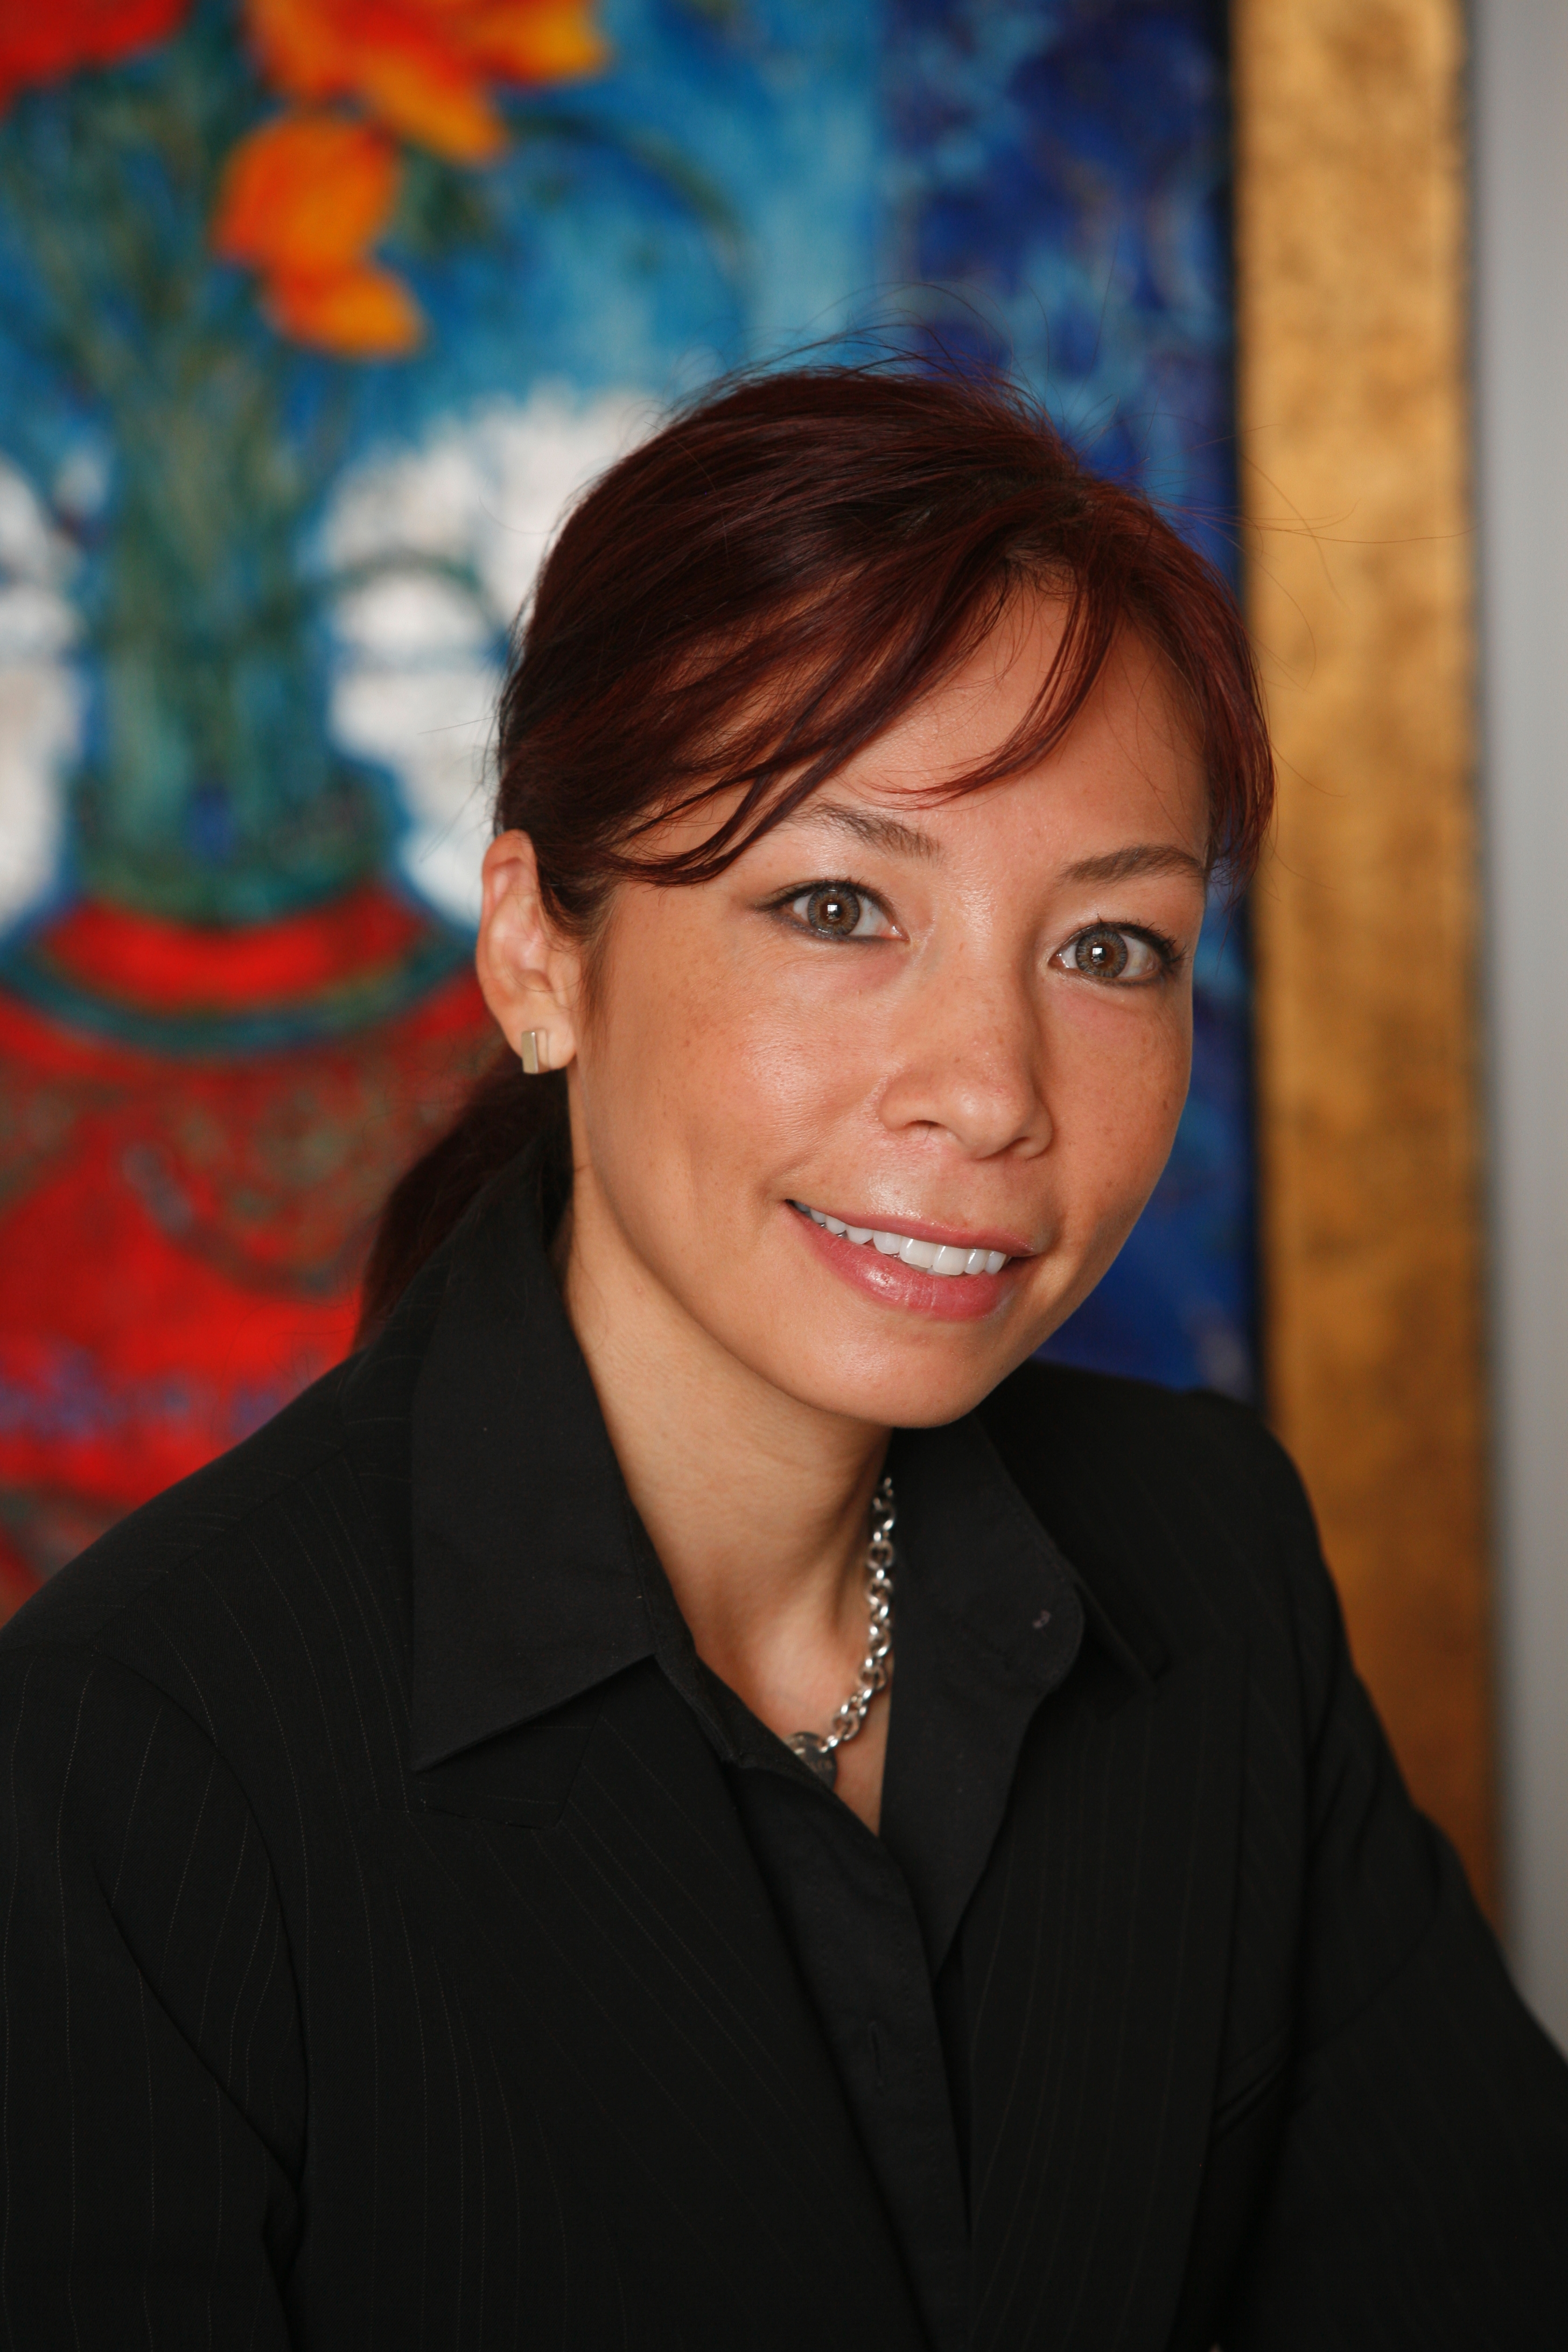 Gina DaRoza, Toronto Health Care Lawyer